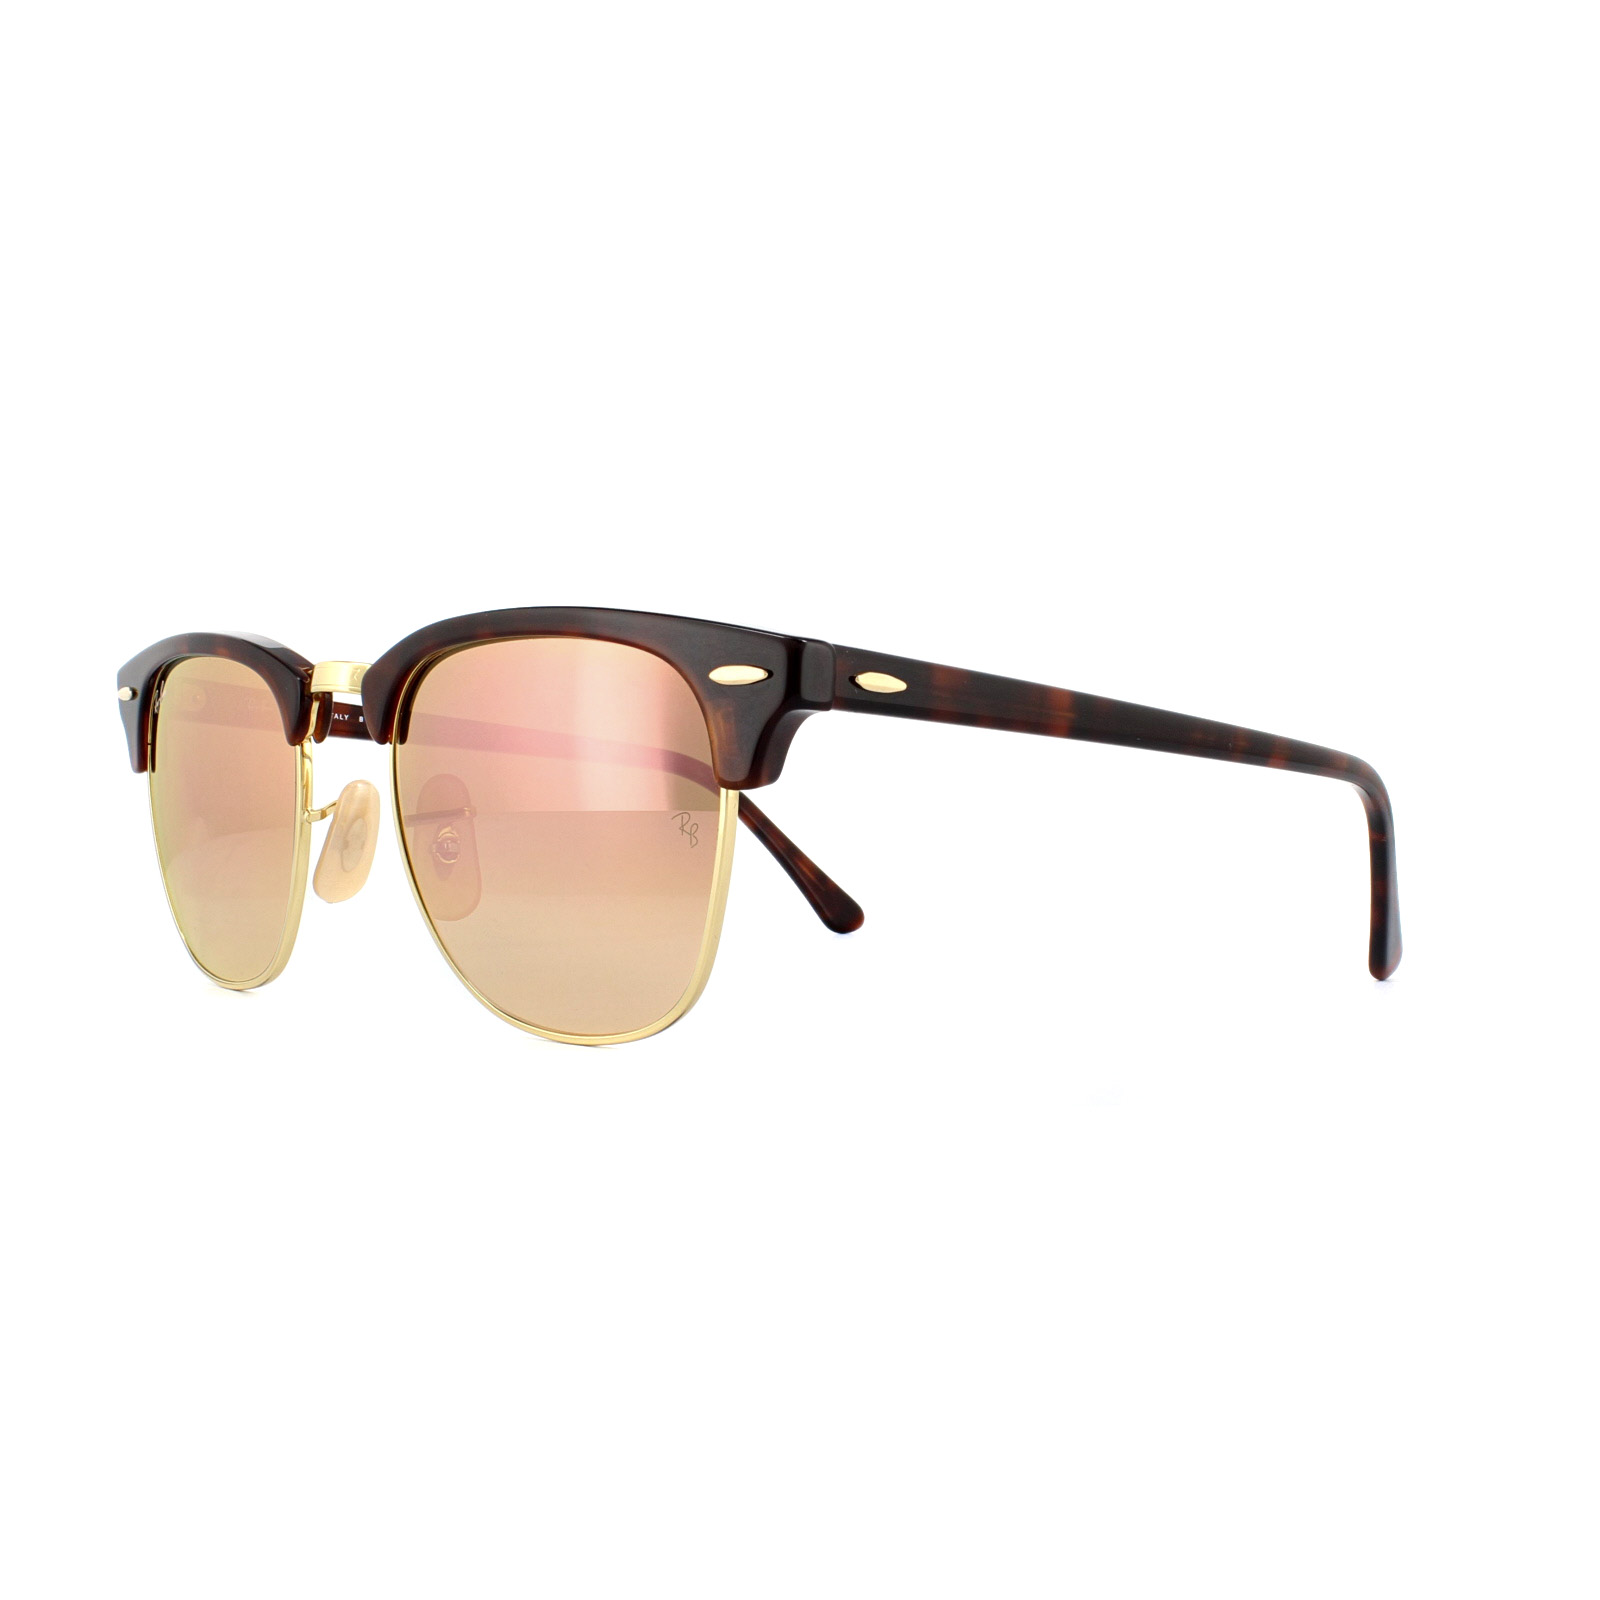 Sentinel Ray-Ban Sunglasses Clubmaster 3016 990 7O Red Havana Copper Flash  Gradient 51mm c47c34900a